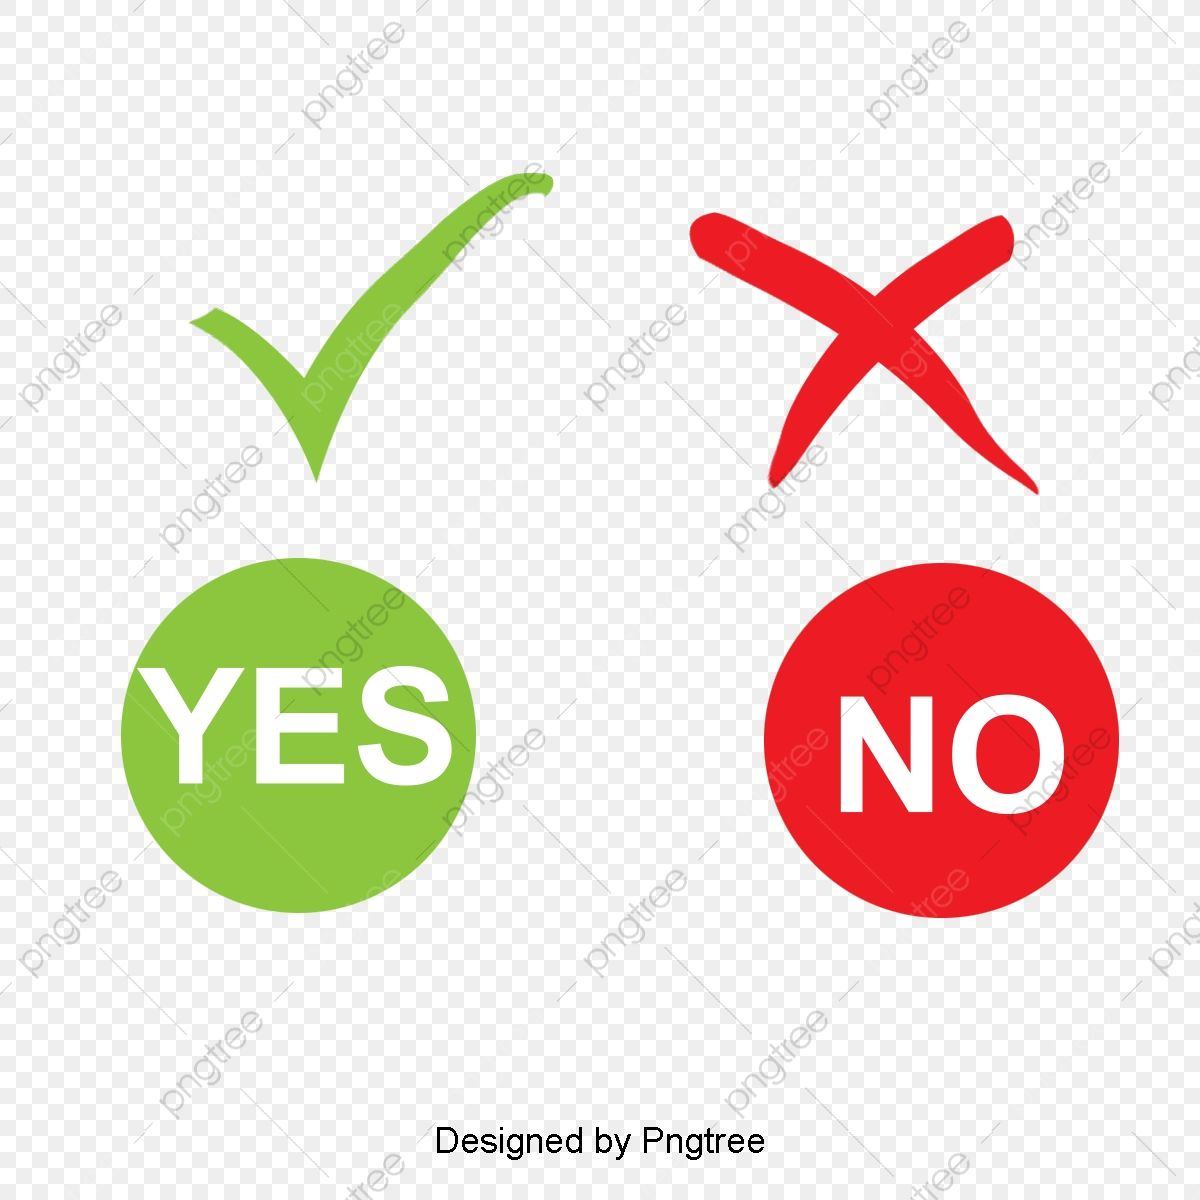 Right Or Wrong Red Cross Green Tick Vector Right Or Wrong Vector Correct Png Transparent Clipart Image And Psd File For Free Download Red Cross Clip Art Clipart Images